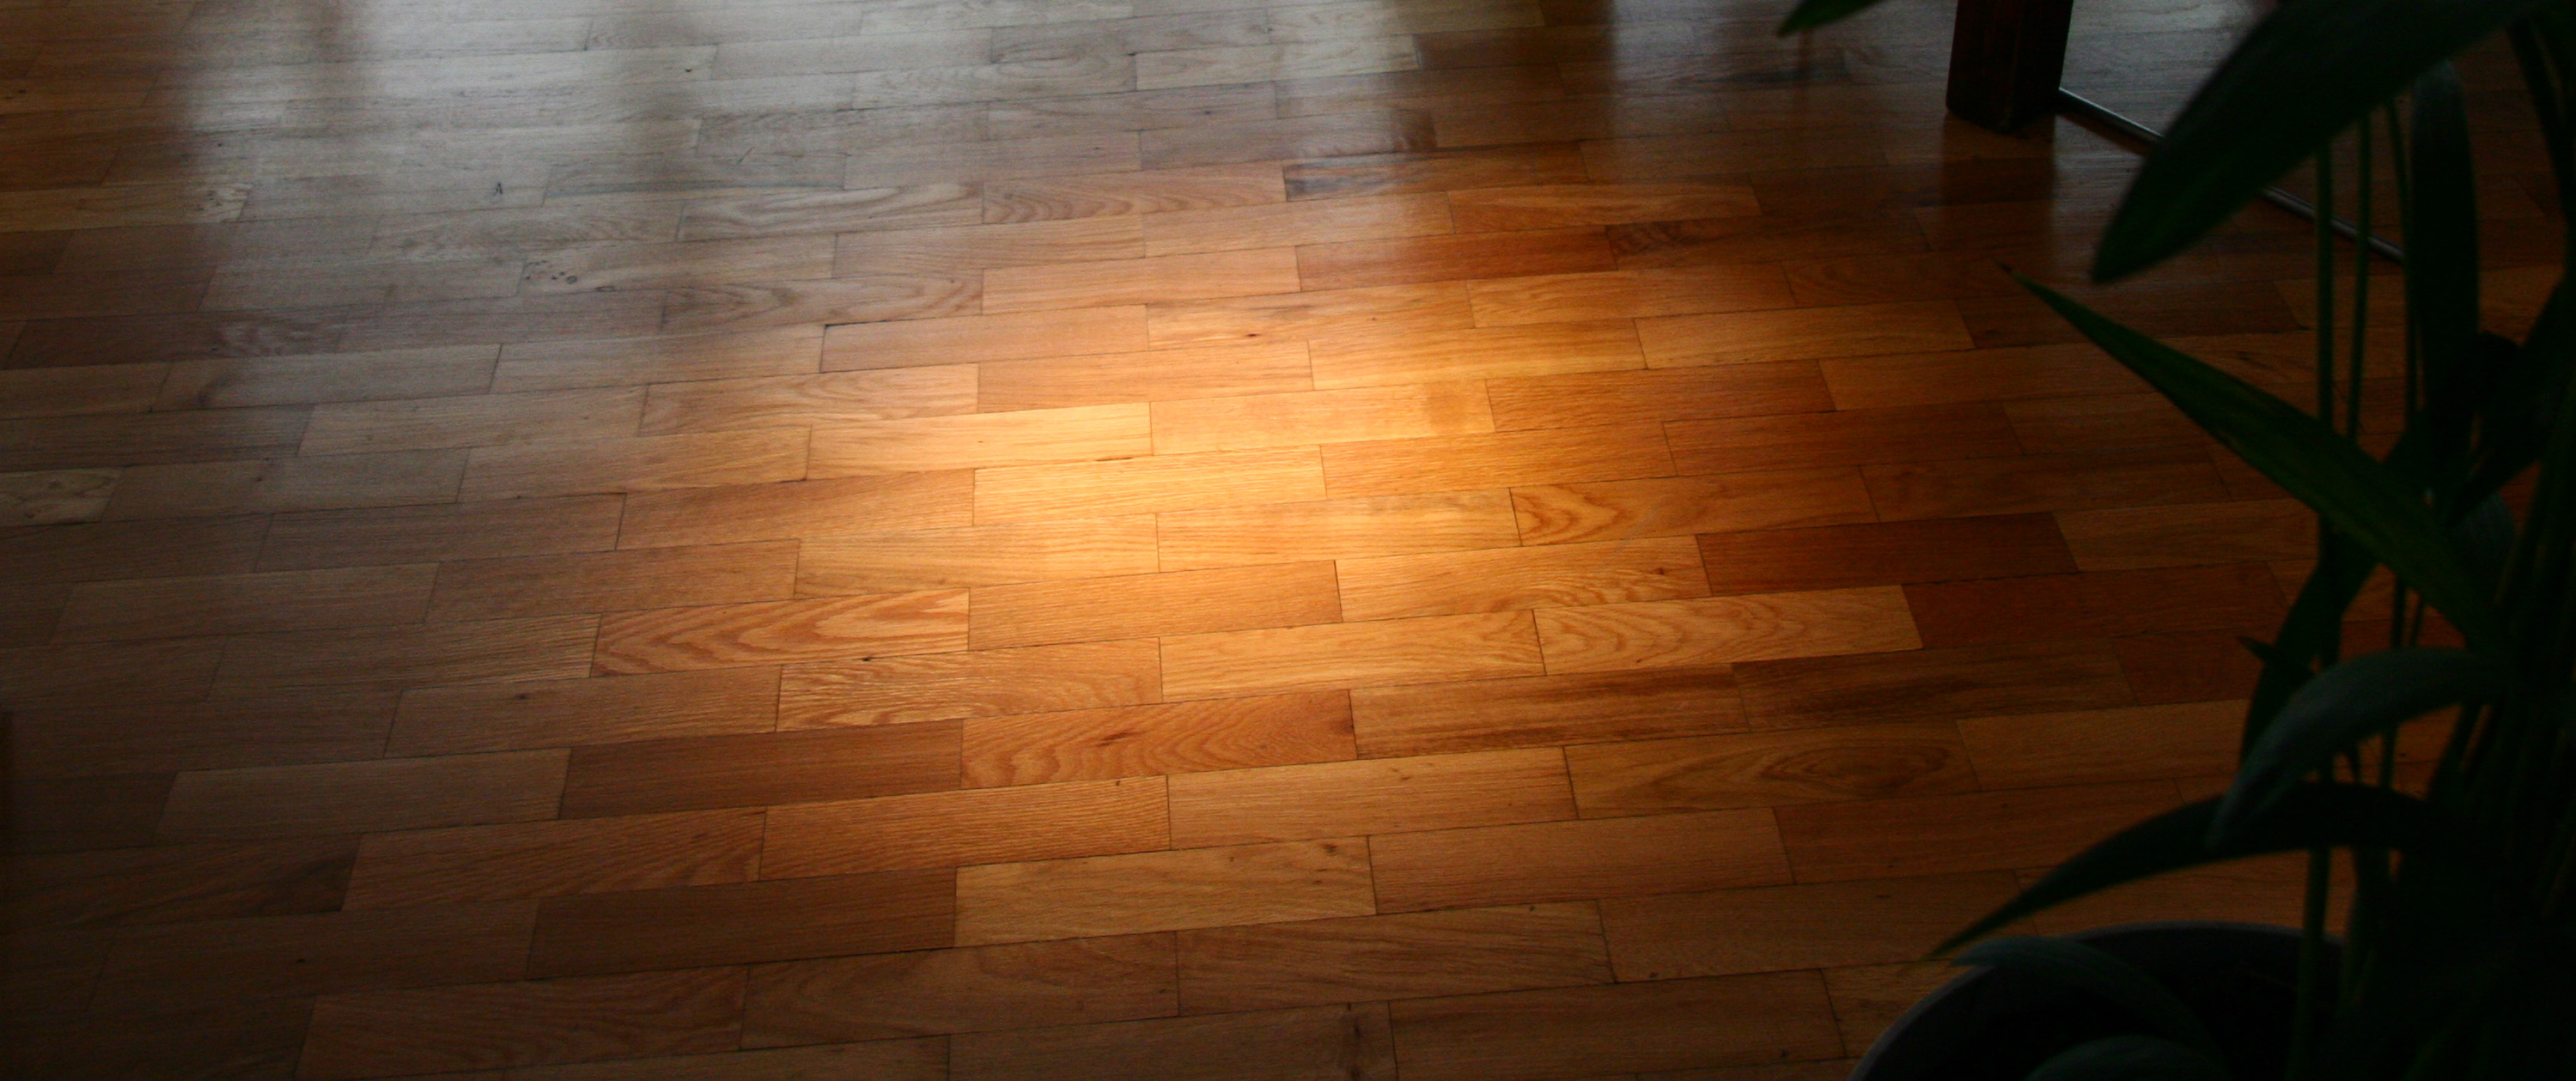 floor sanding slider background